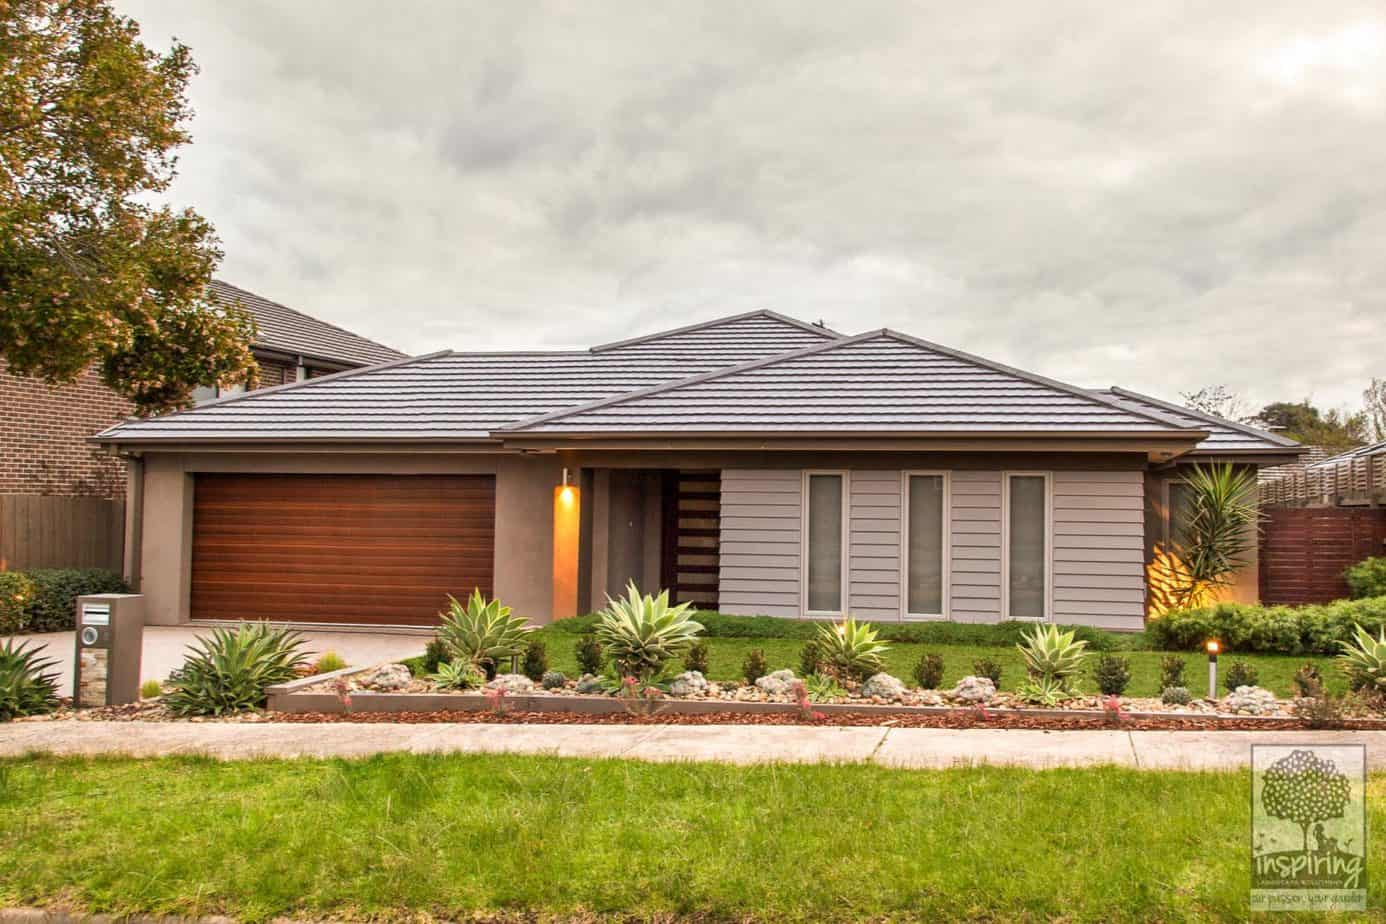 Ashburton front landscape design with large lawn area surrounded by mainly succulents